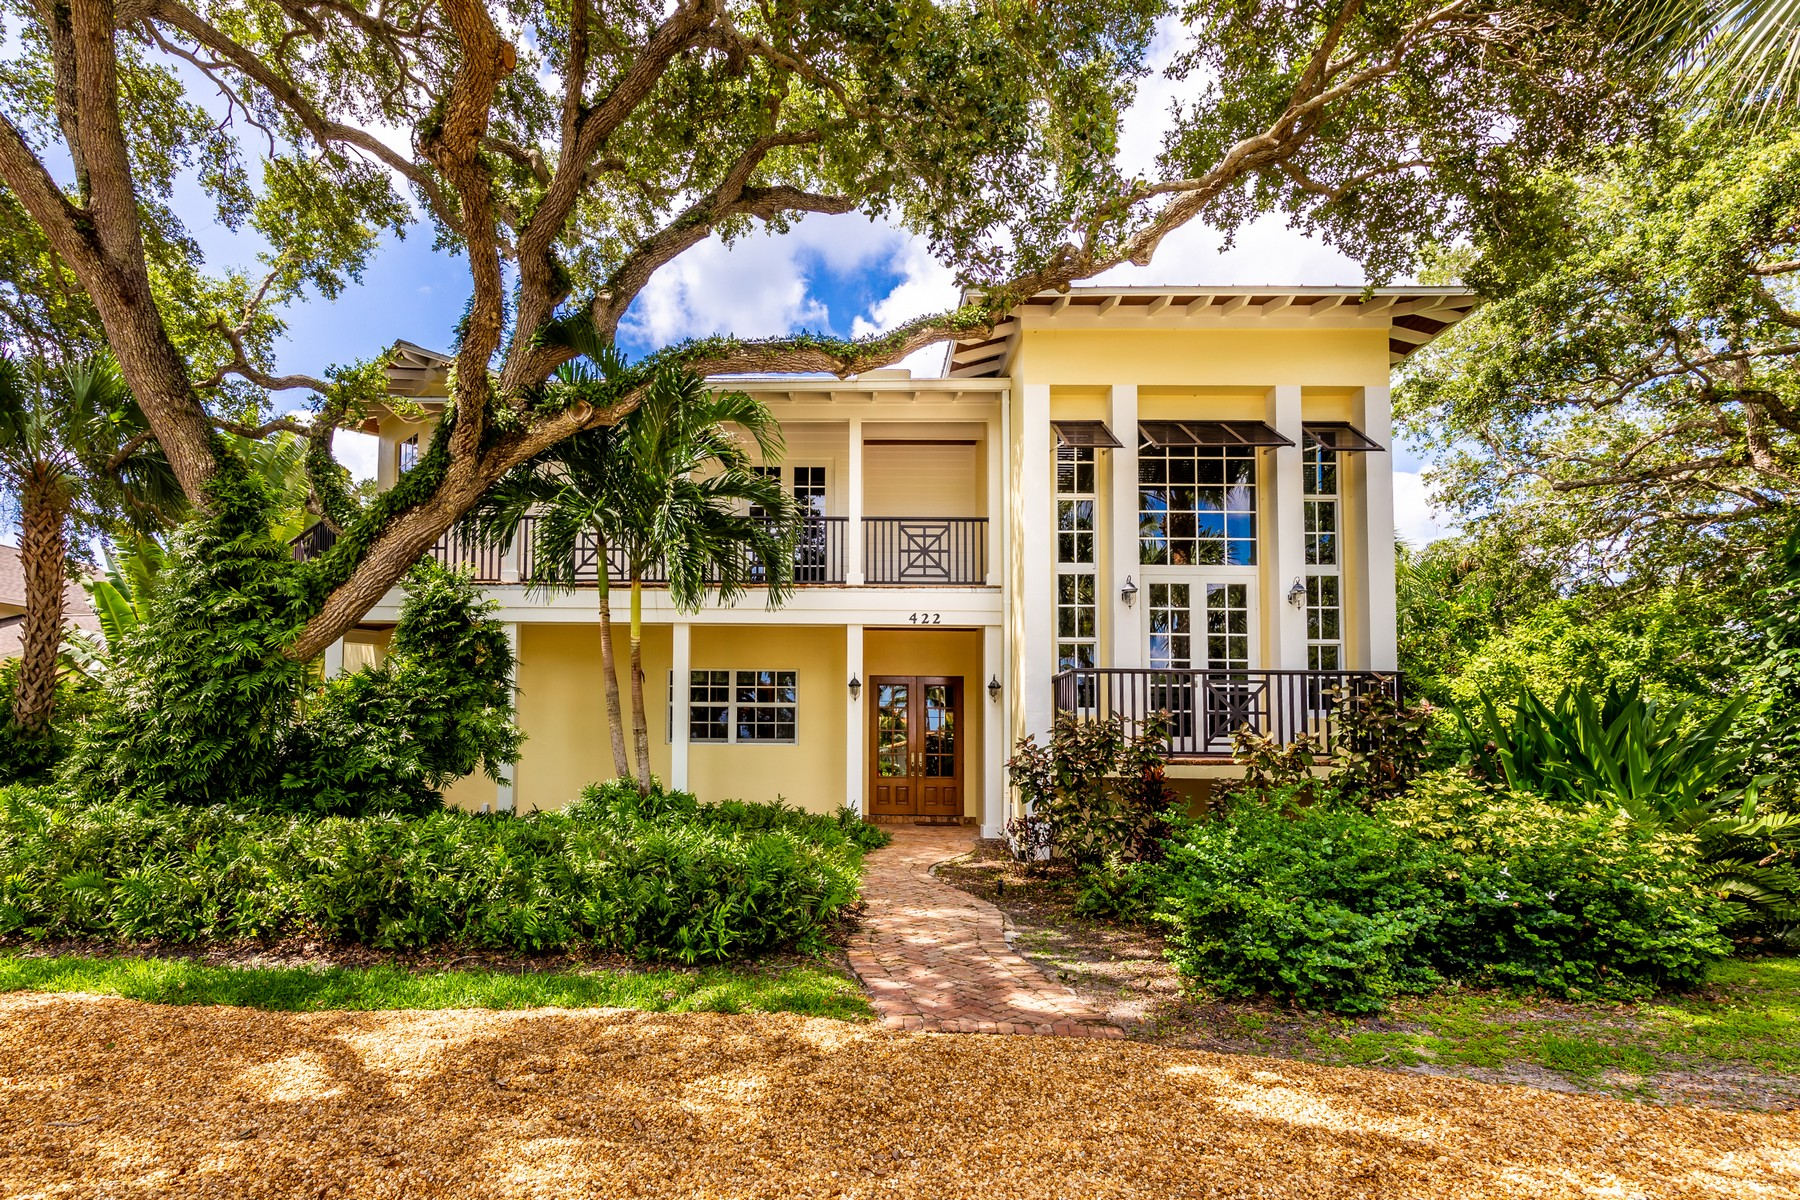 Single Family Homes for Sale at Private Island Estate 422 Live Oak Road Vero Beach, Florida 32963 United States